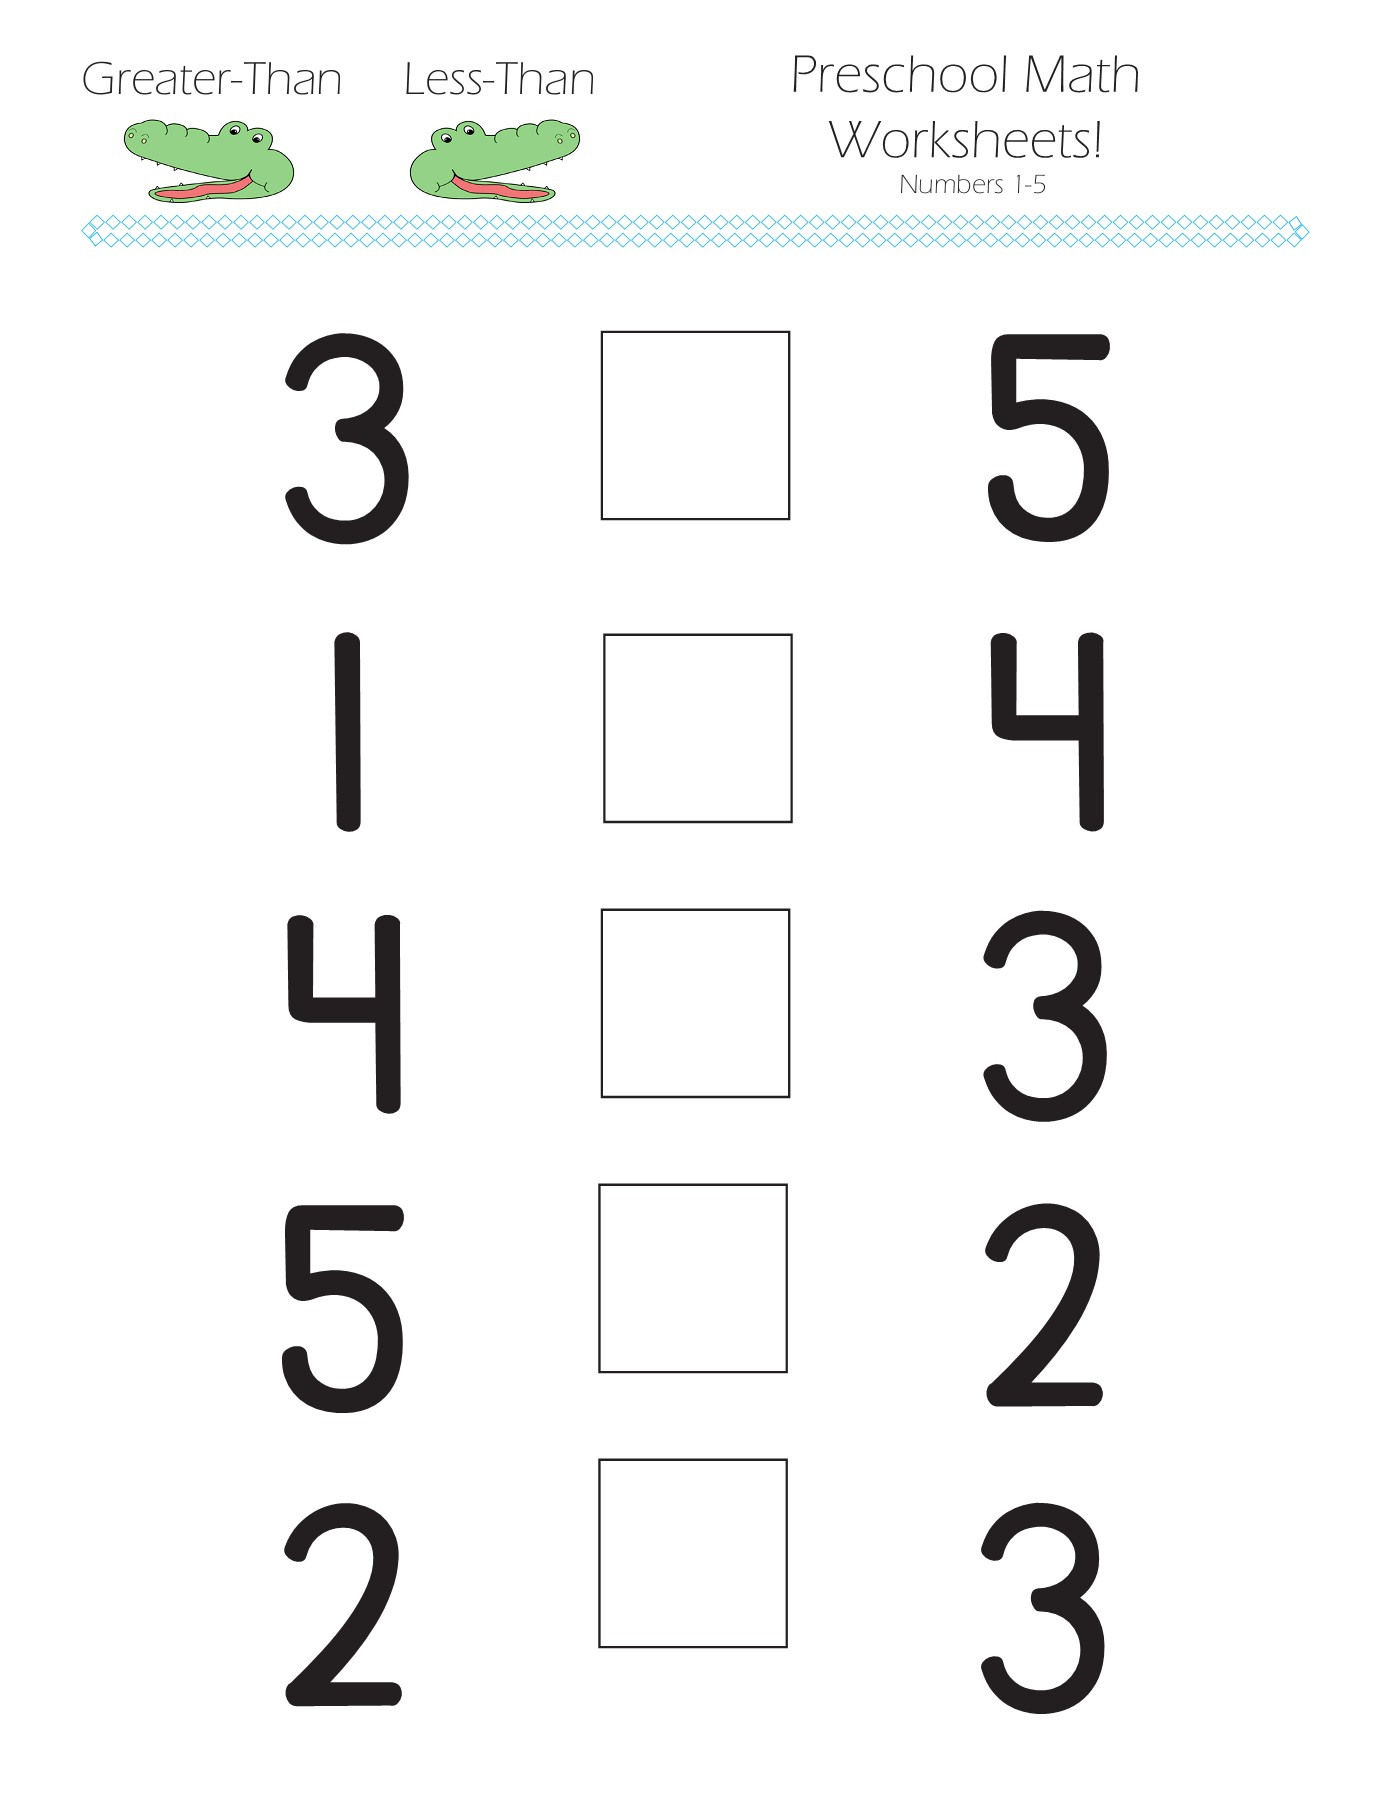 Greaterthan Lessthan Preschool Math Worksheets